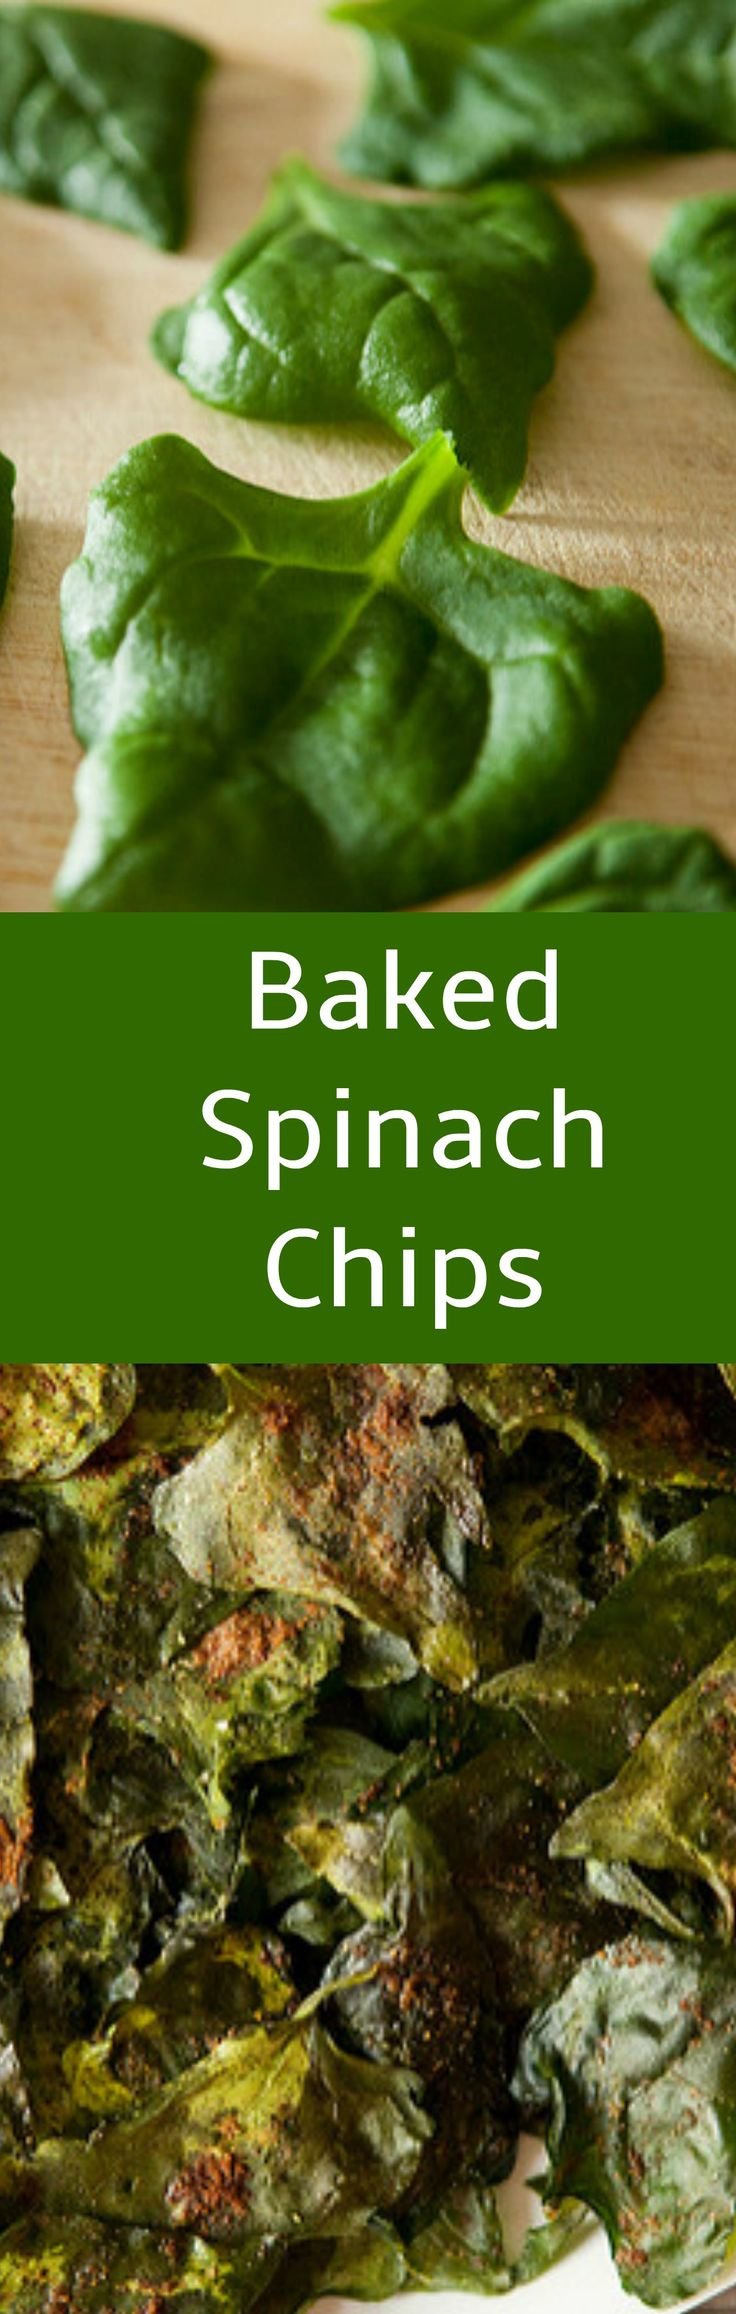 Baked Spinach Chips are made with fresh spinach. They're the perfect, salty, healthy snack! Great alternative to potato chips!